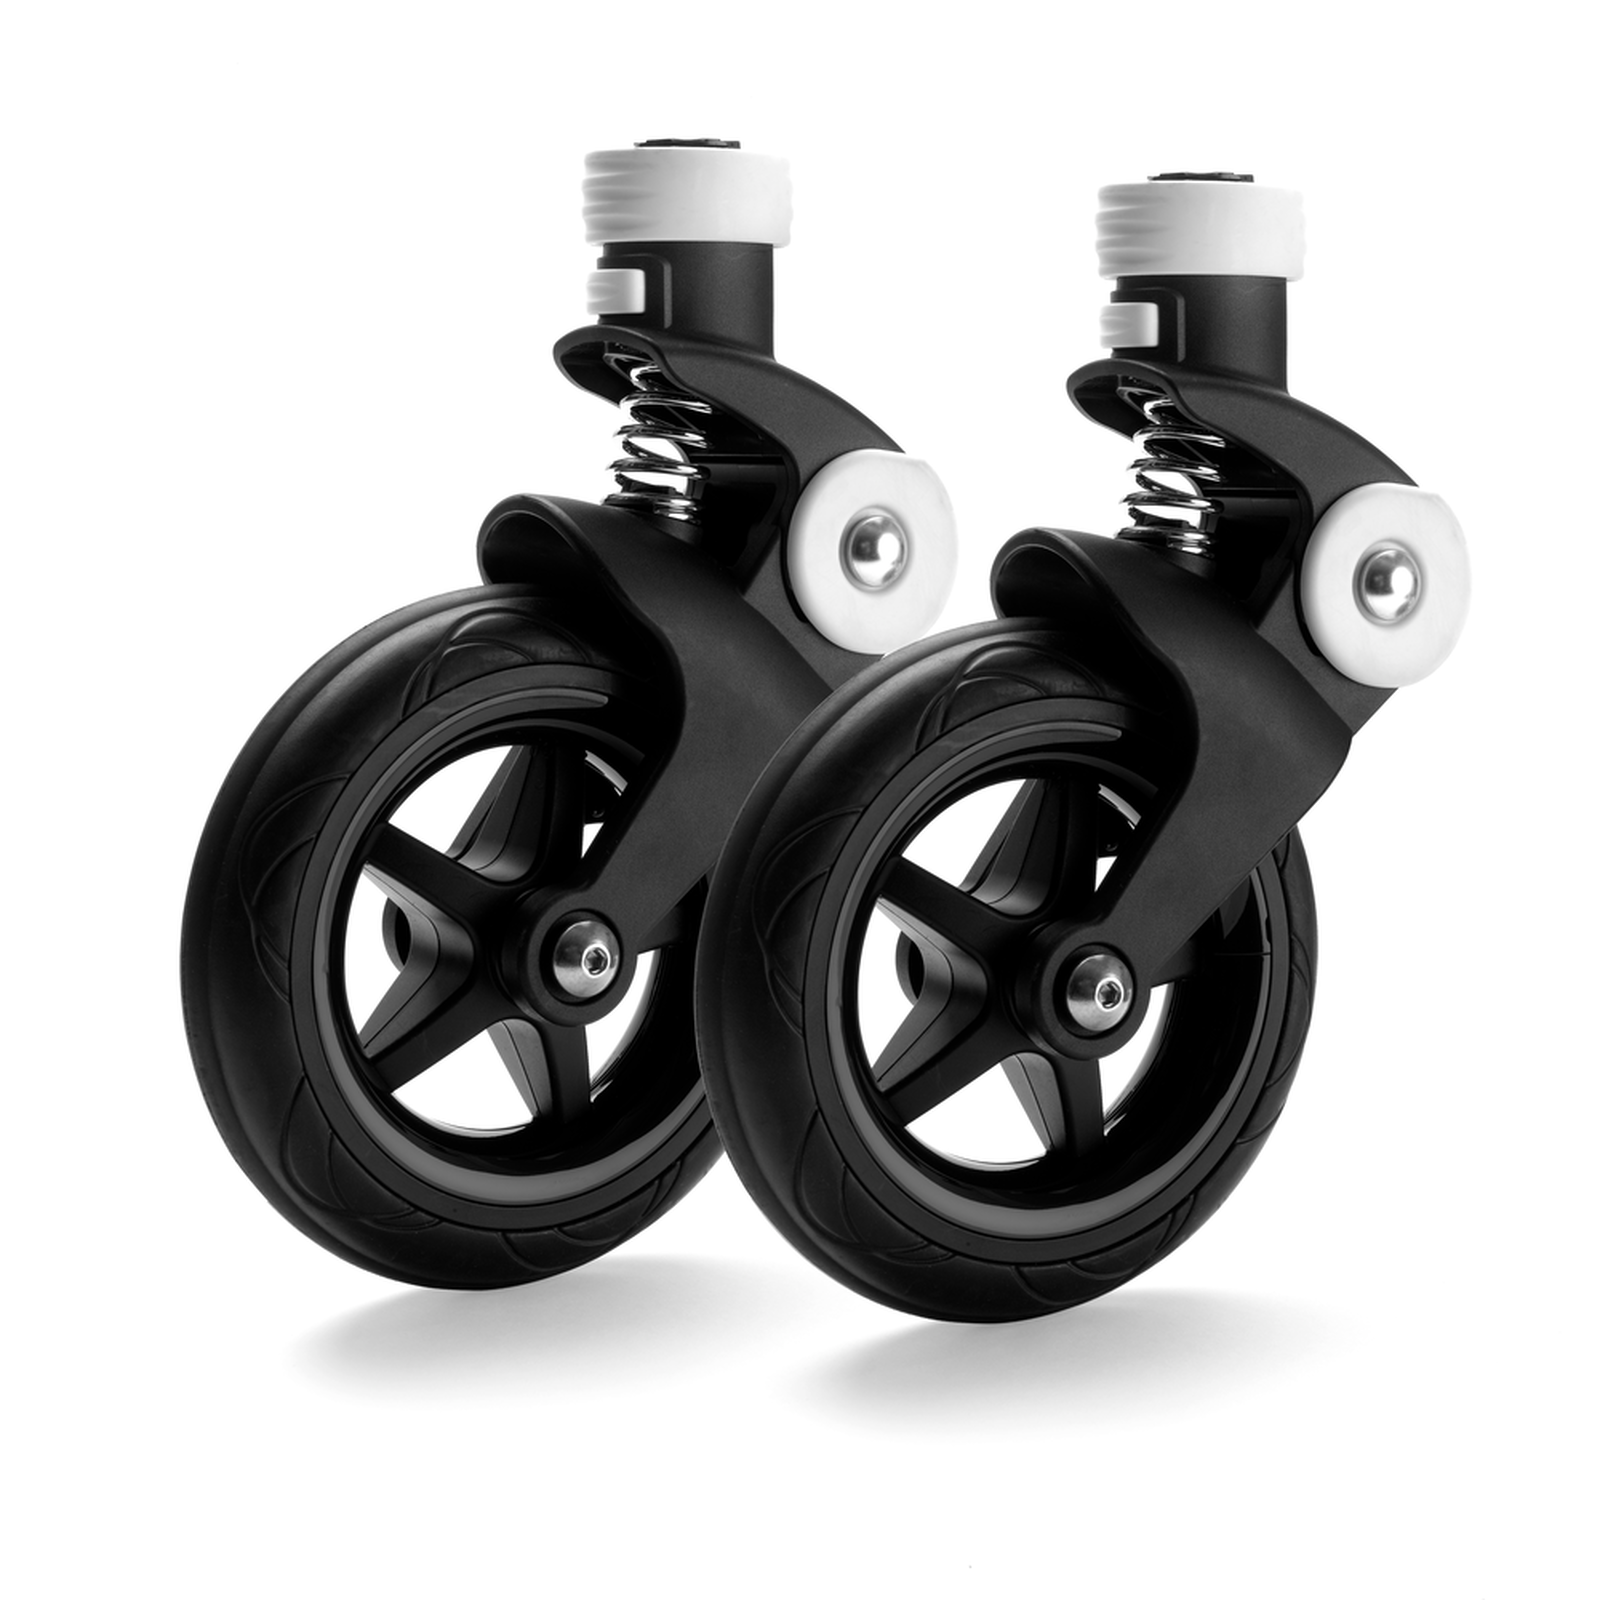 Bugaboo Bee 5 wheel caps